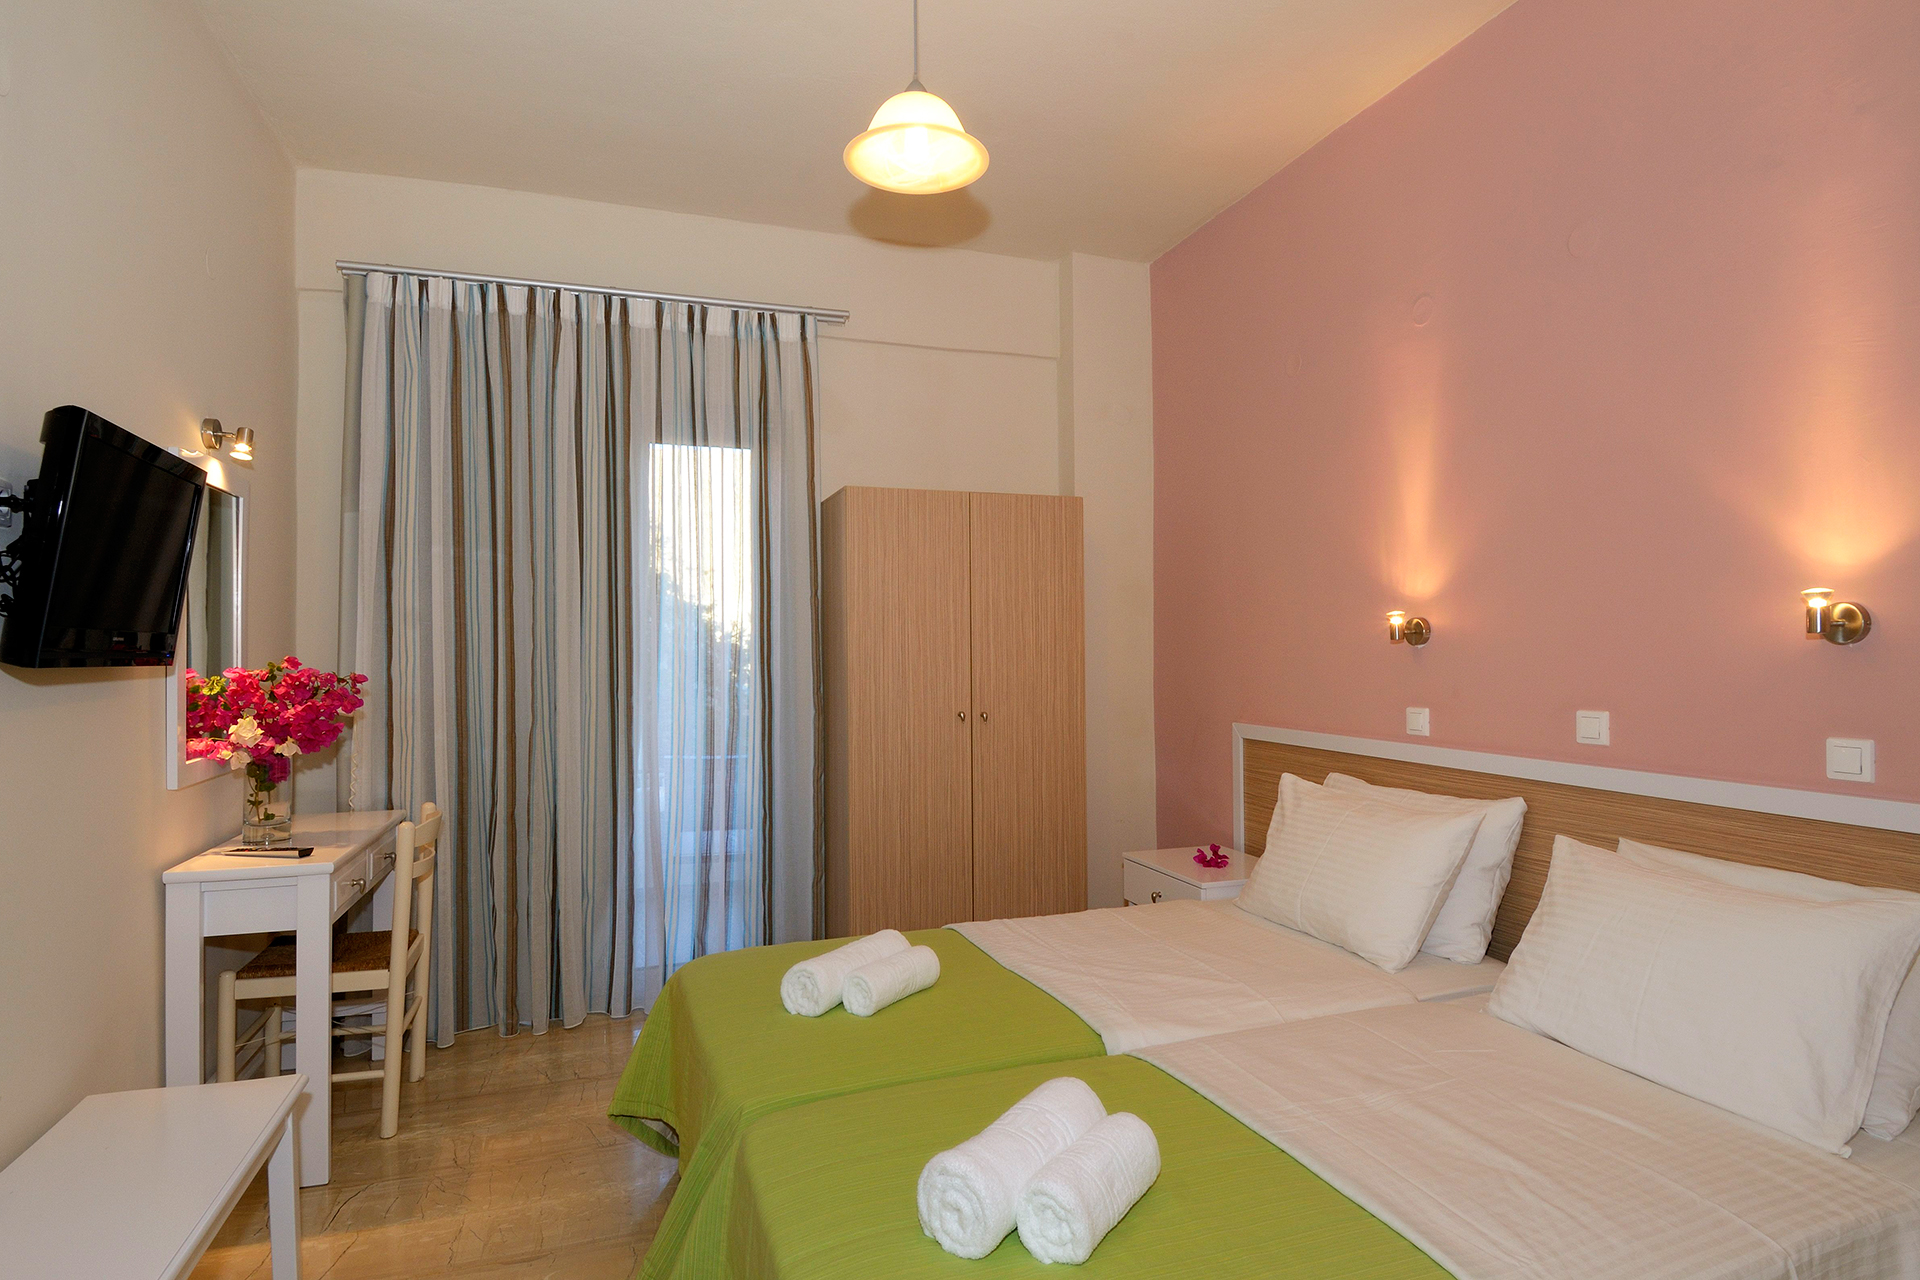 Costas & Chrysoula rooms & apartments